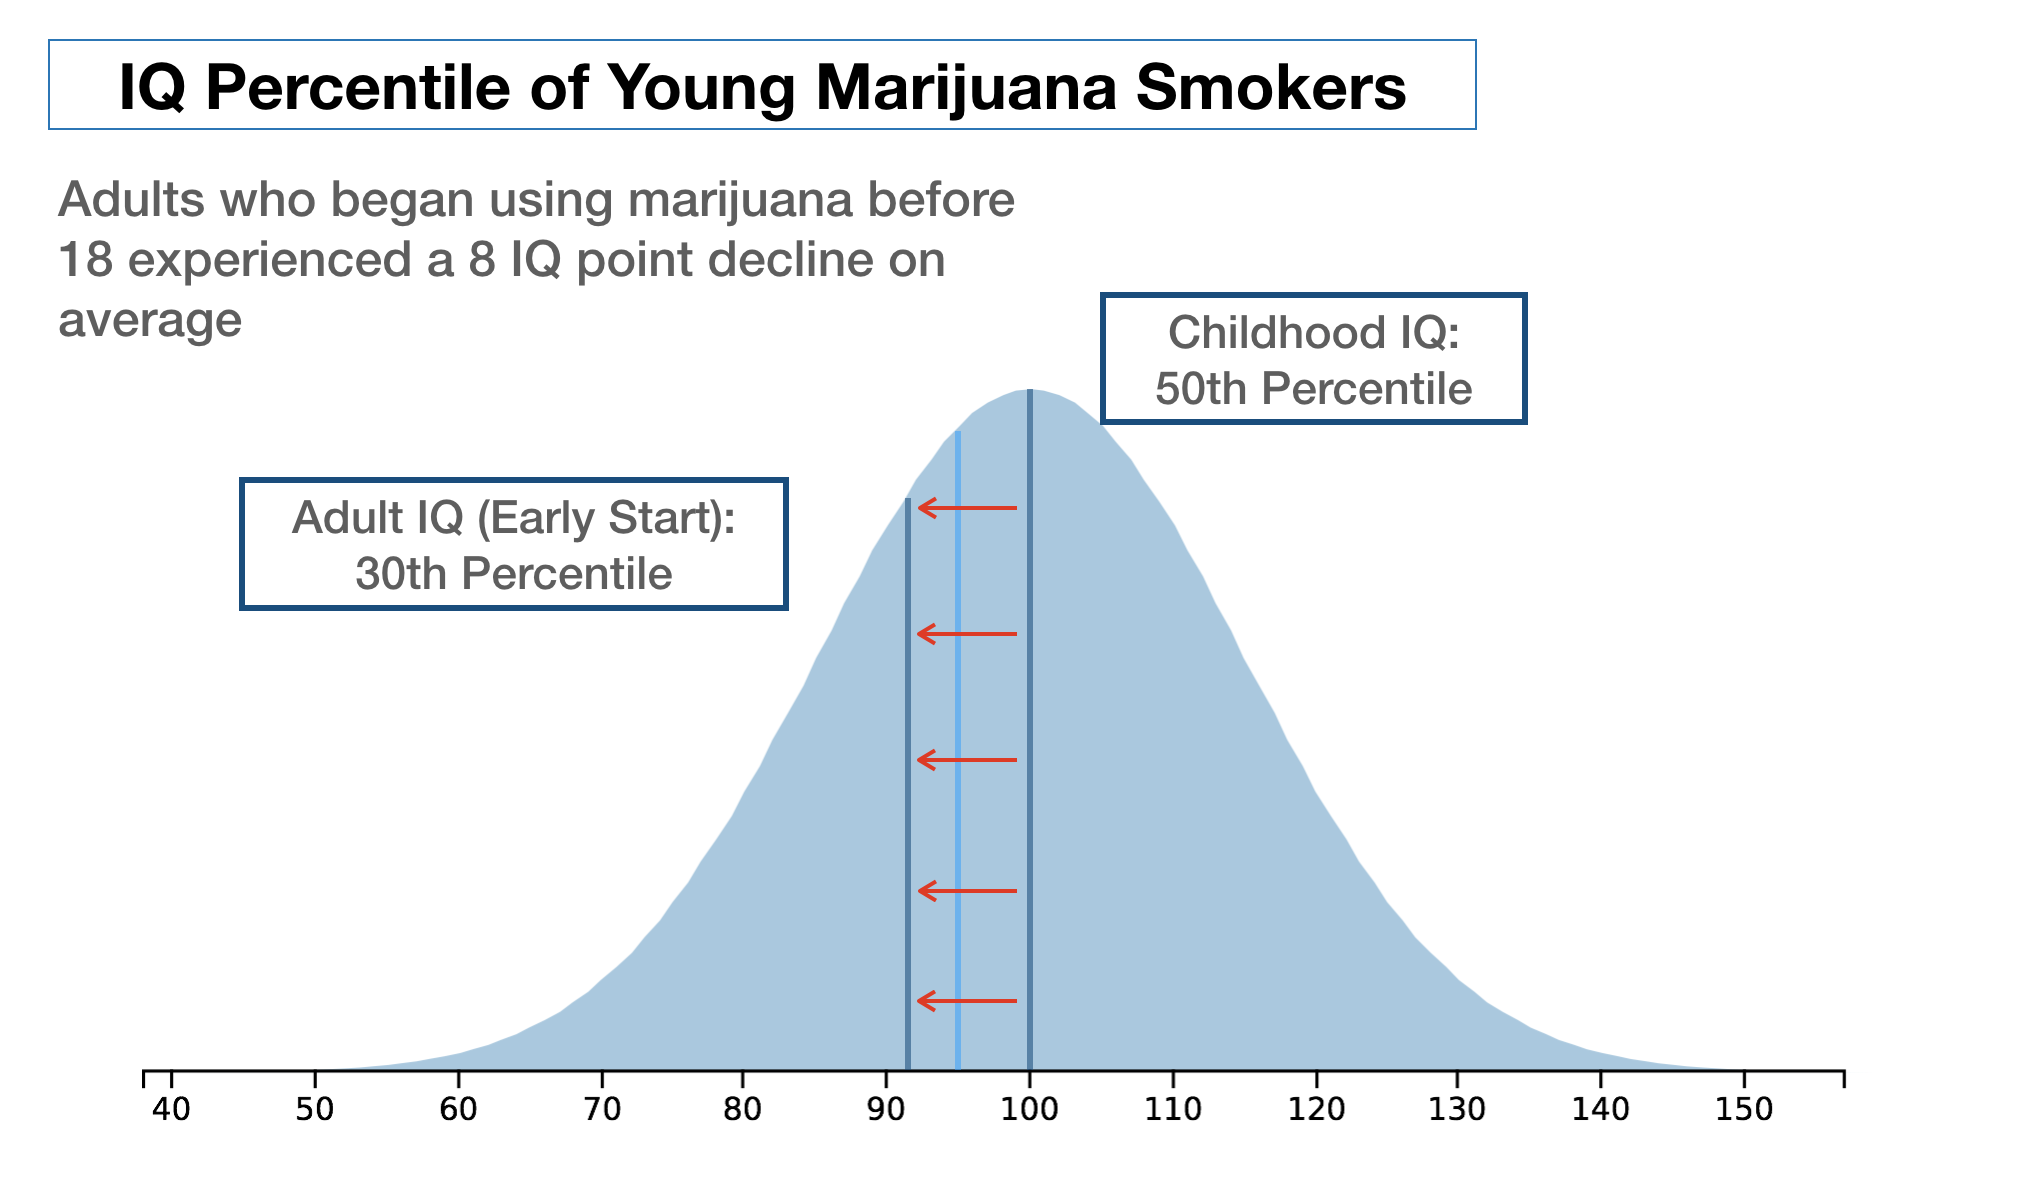 6 Charts: Does Smoking Marijuana Reduce your IQ?